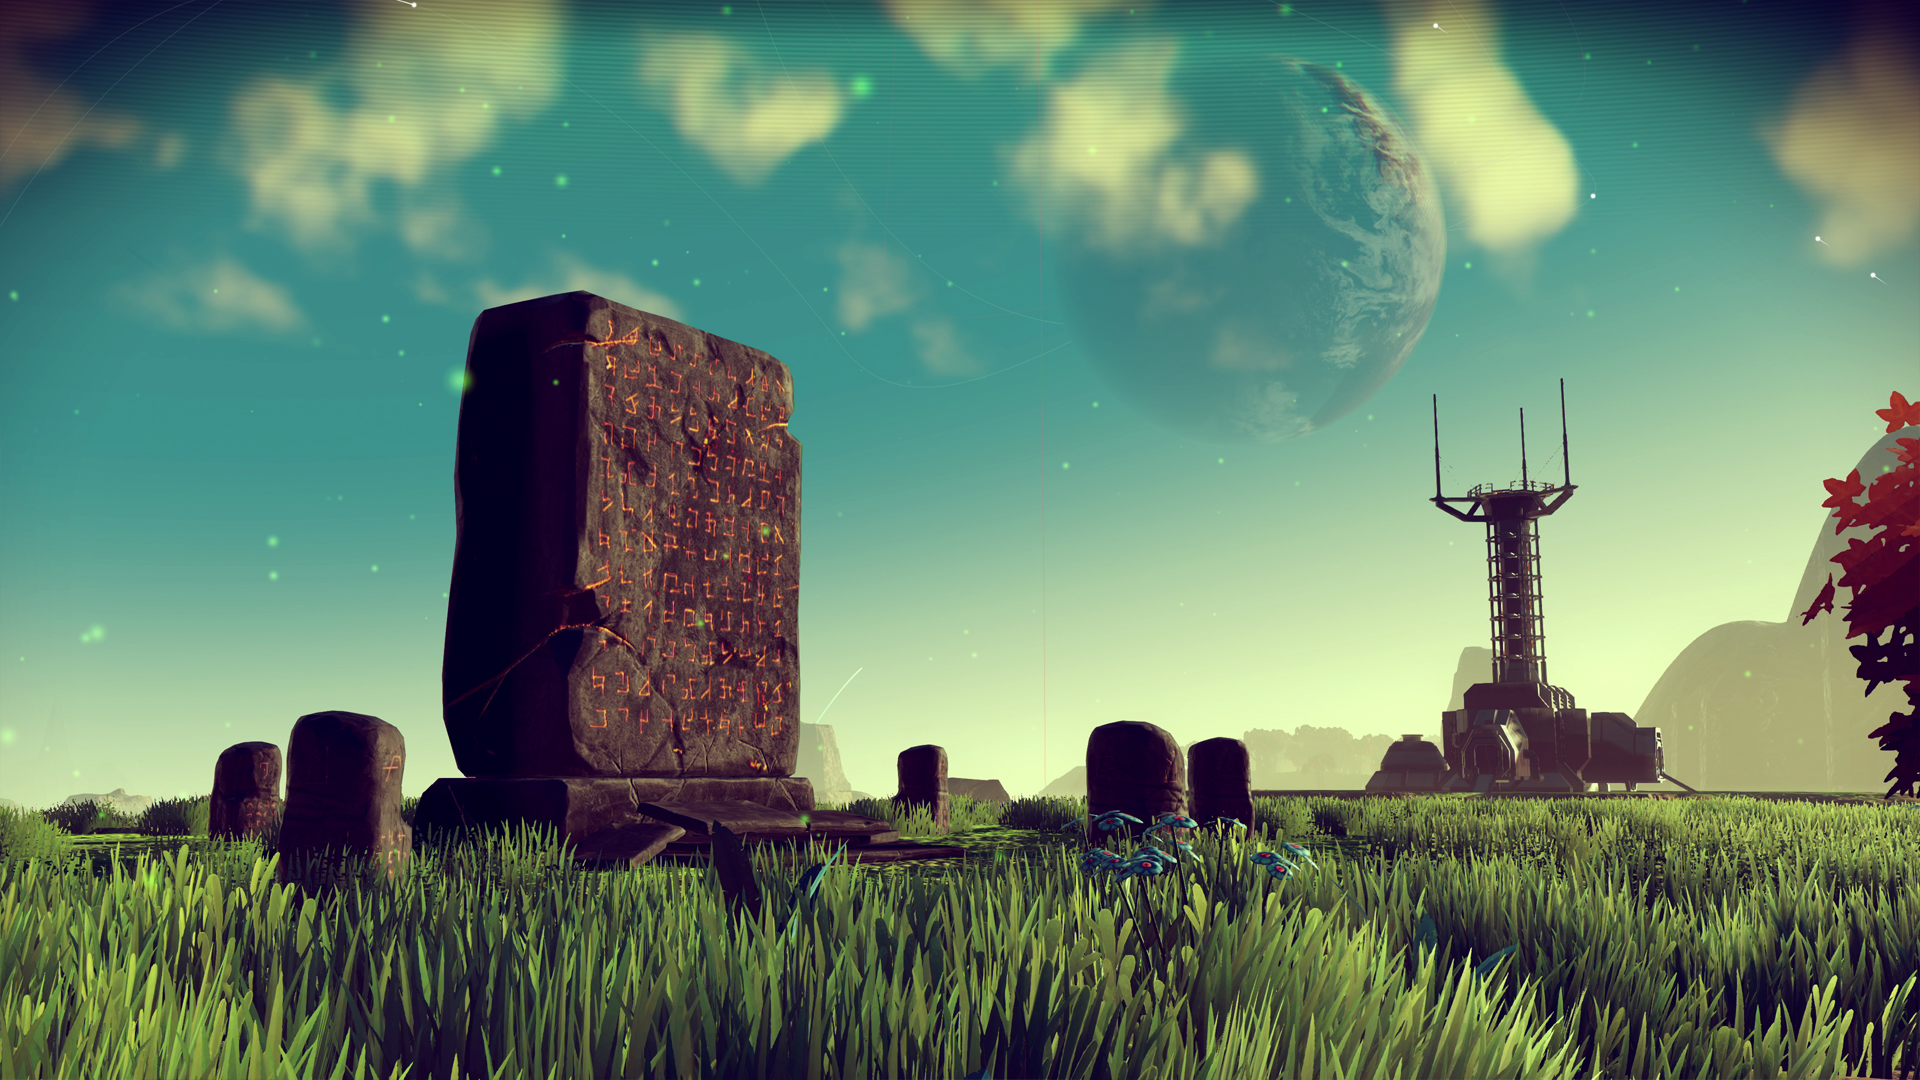 'No Man's Sky' is delayed until August 9th